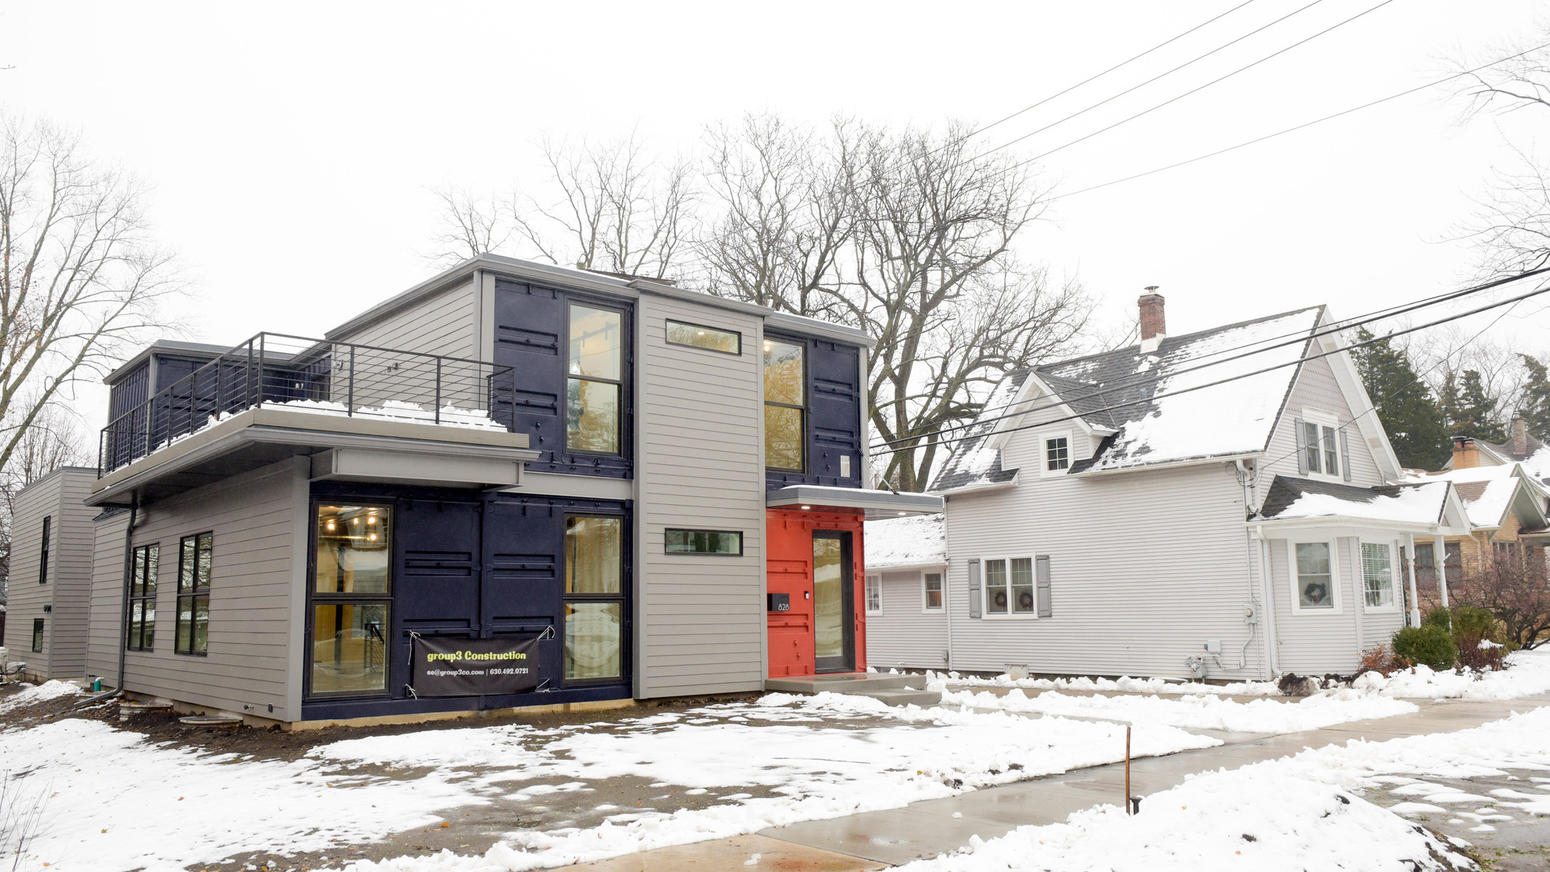 ct-st-charles-container-home-20181206-001.jpg